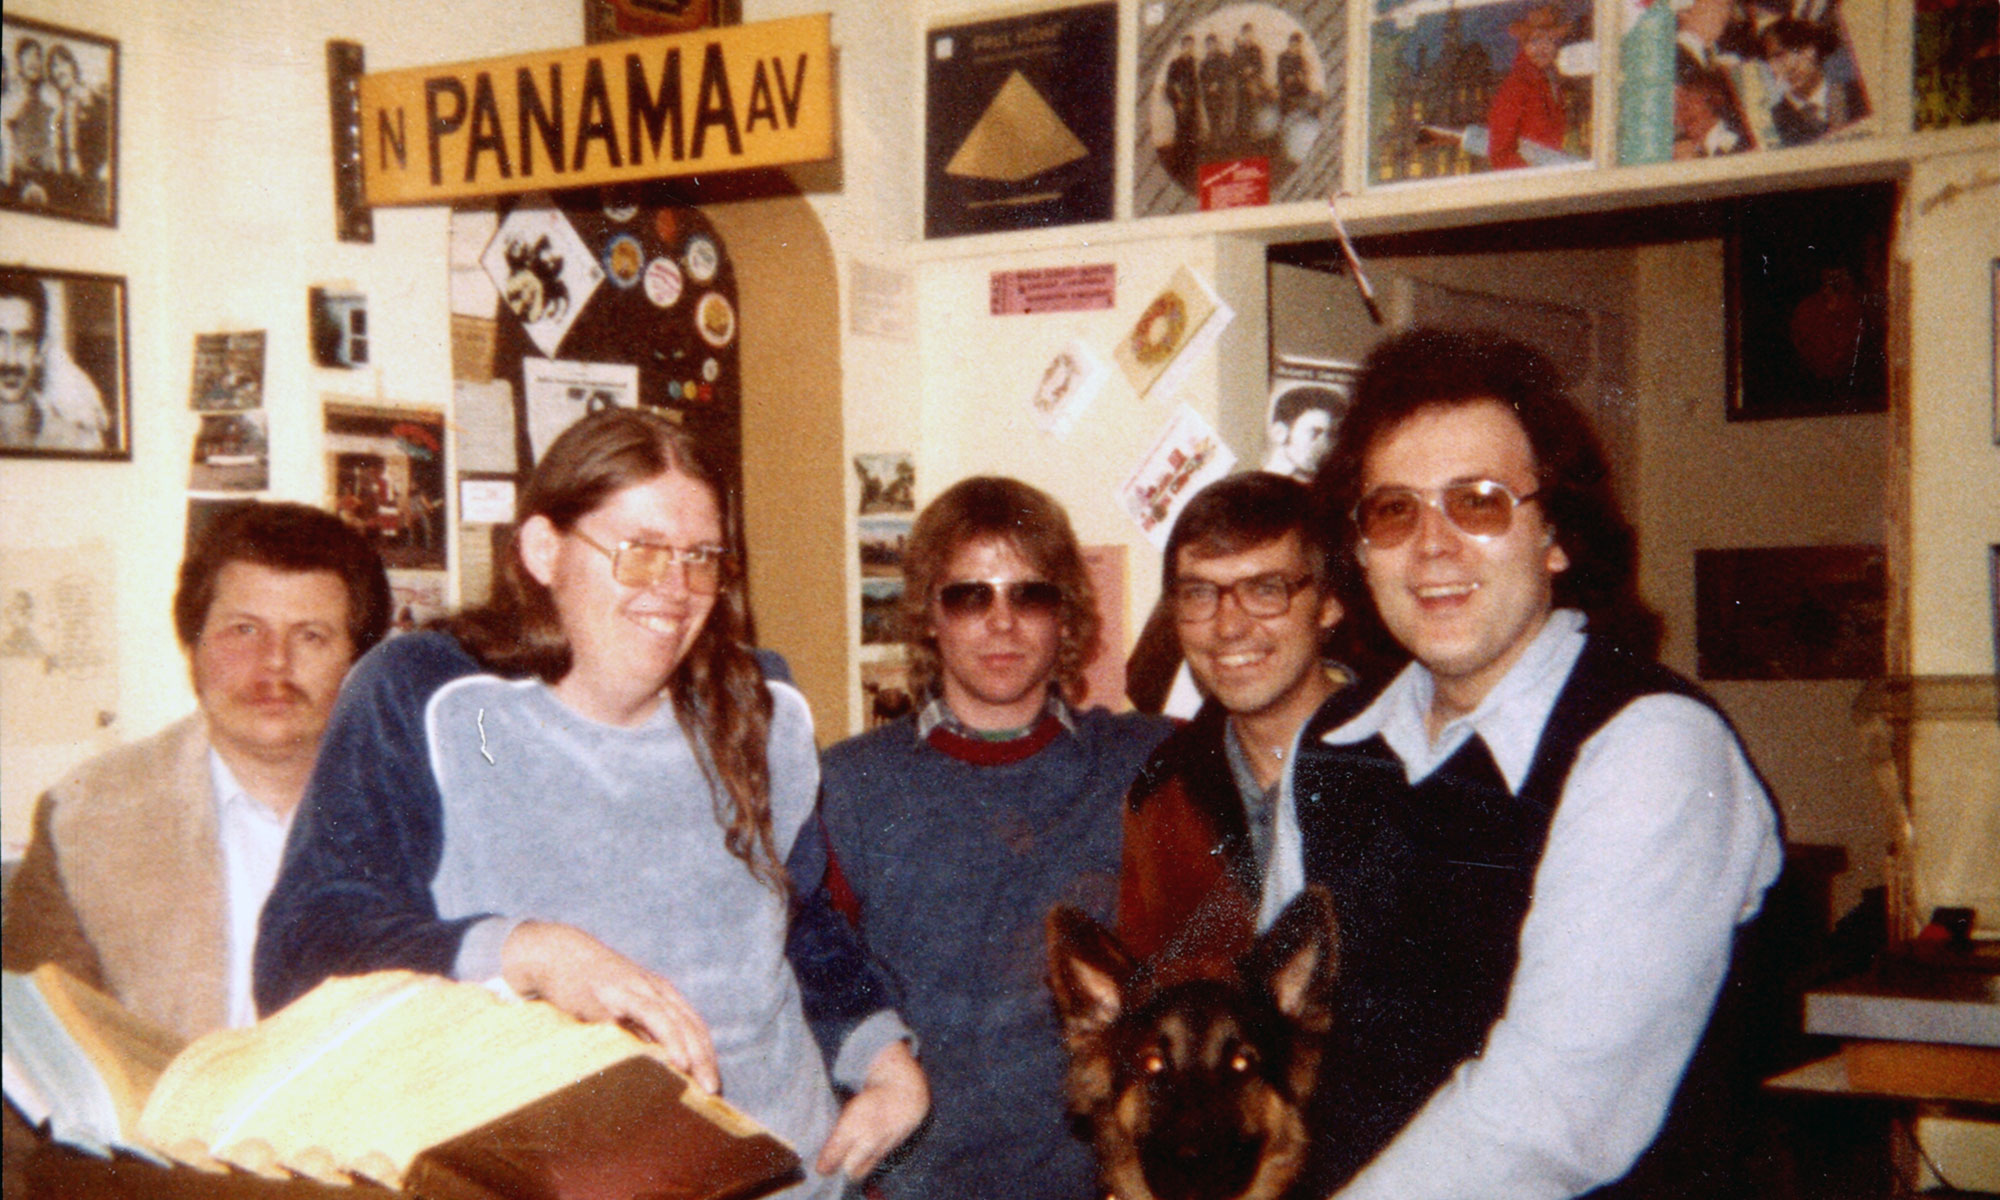 Bob, Kevin, CJ, Rick, Crunch and me, 1980's